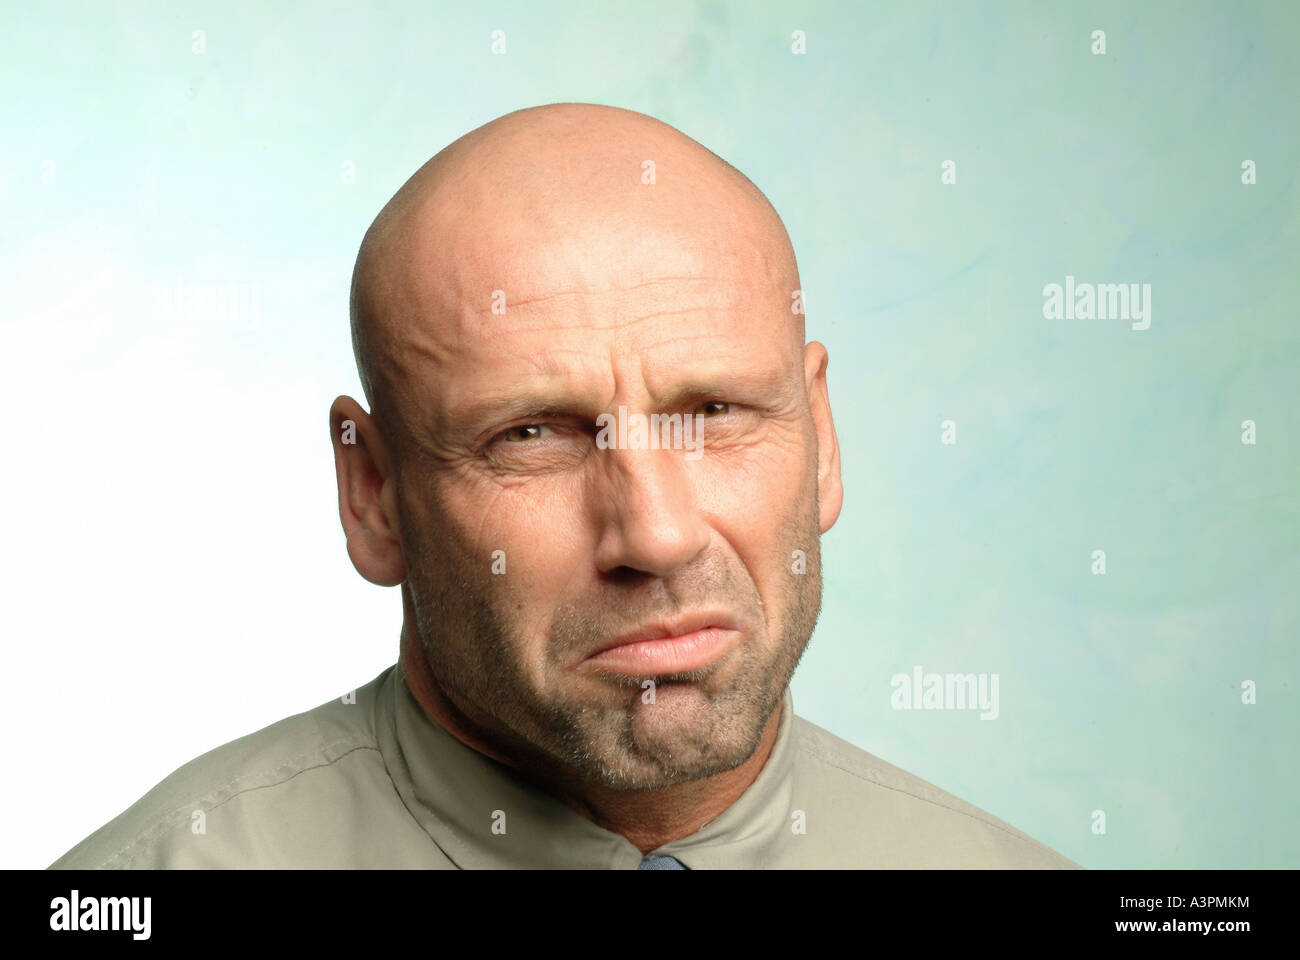 Man with a reluctant look on his face - Stock Image